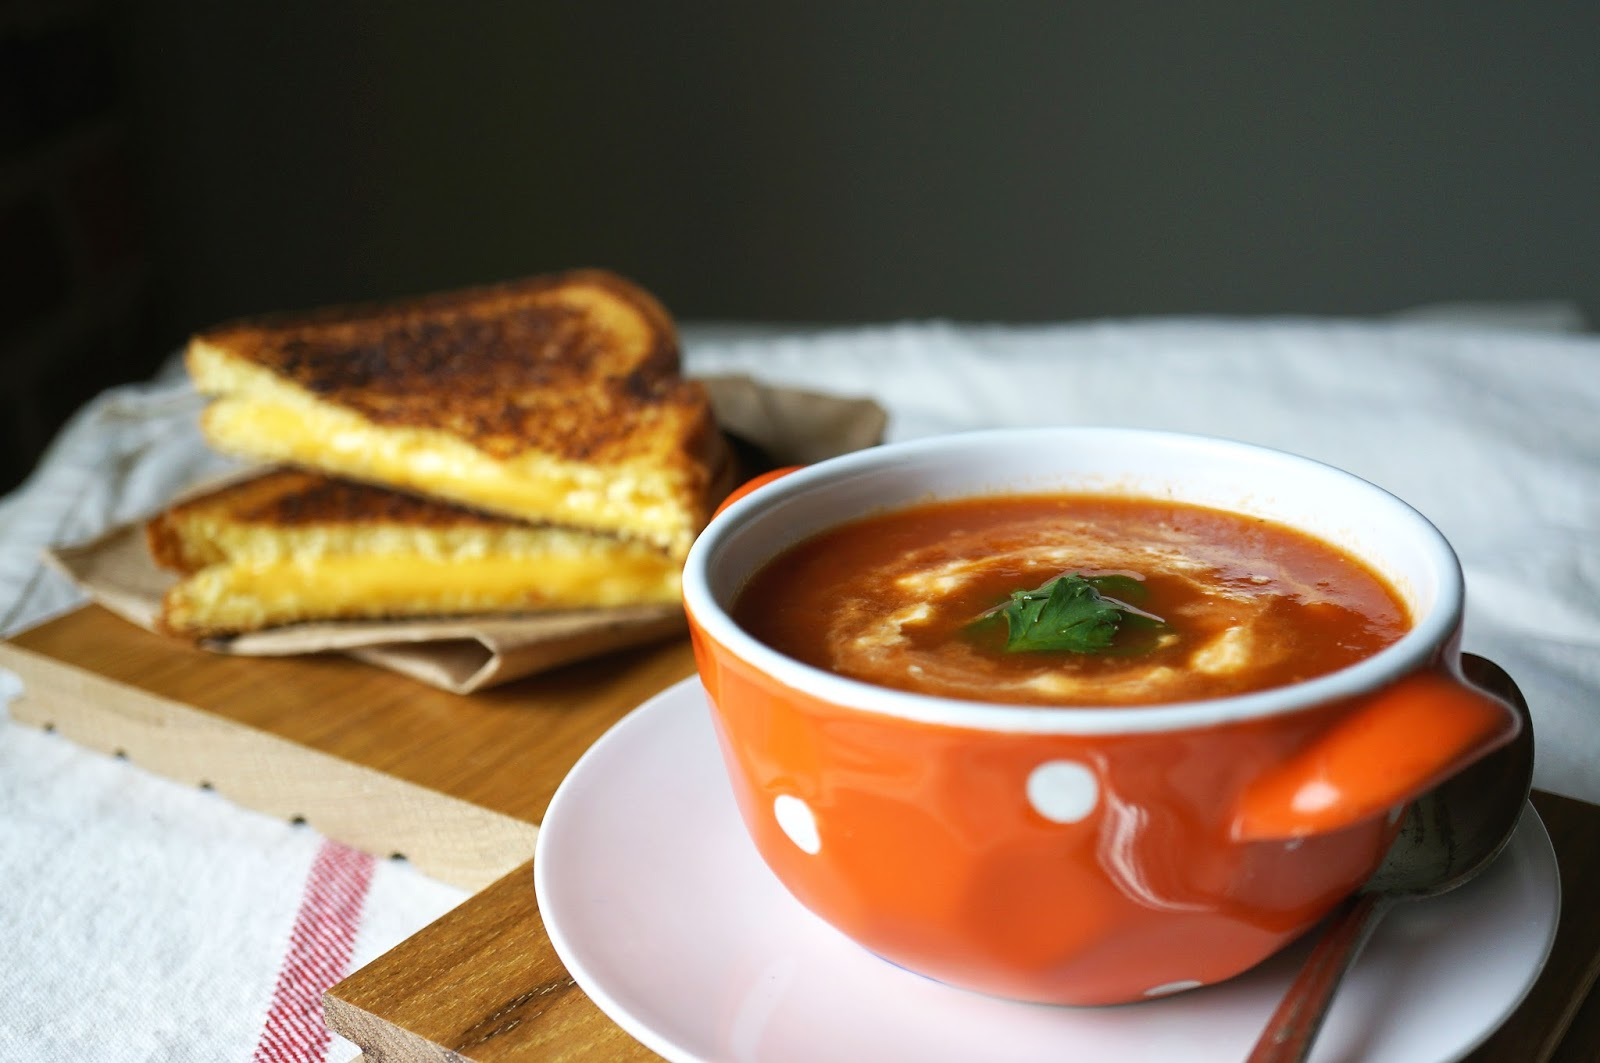 Miss Hangrypants: Spicy Tomato Soup